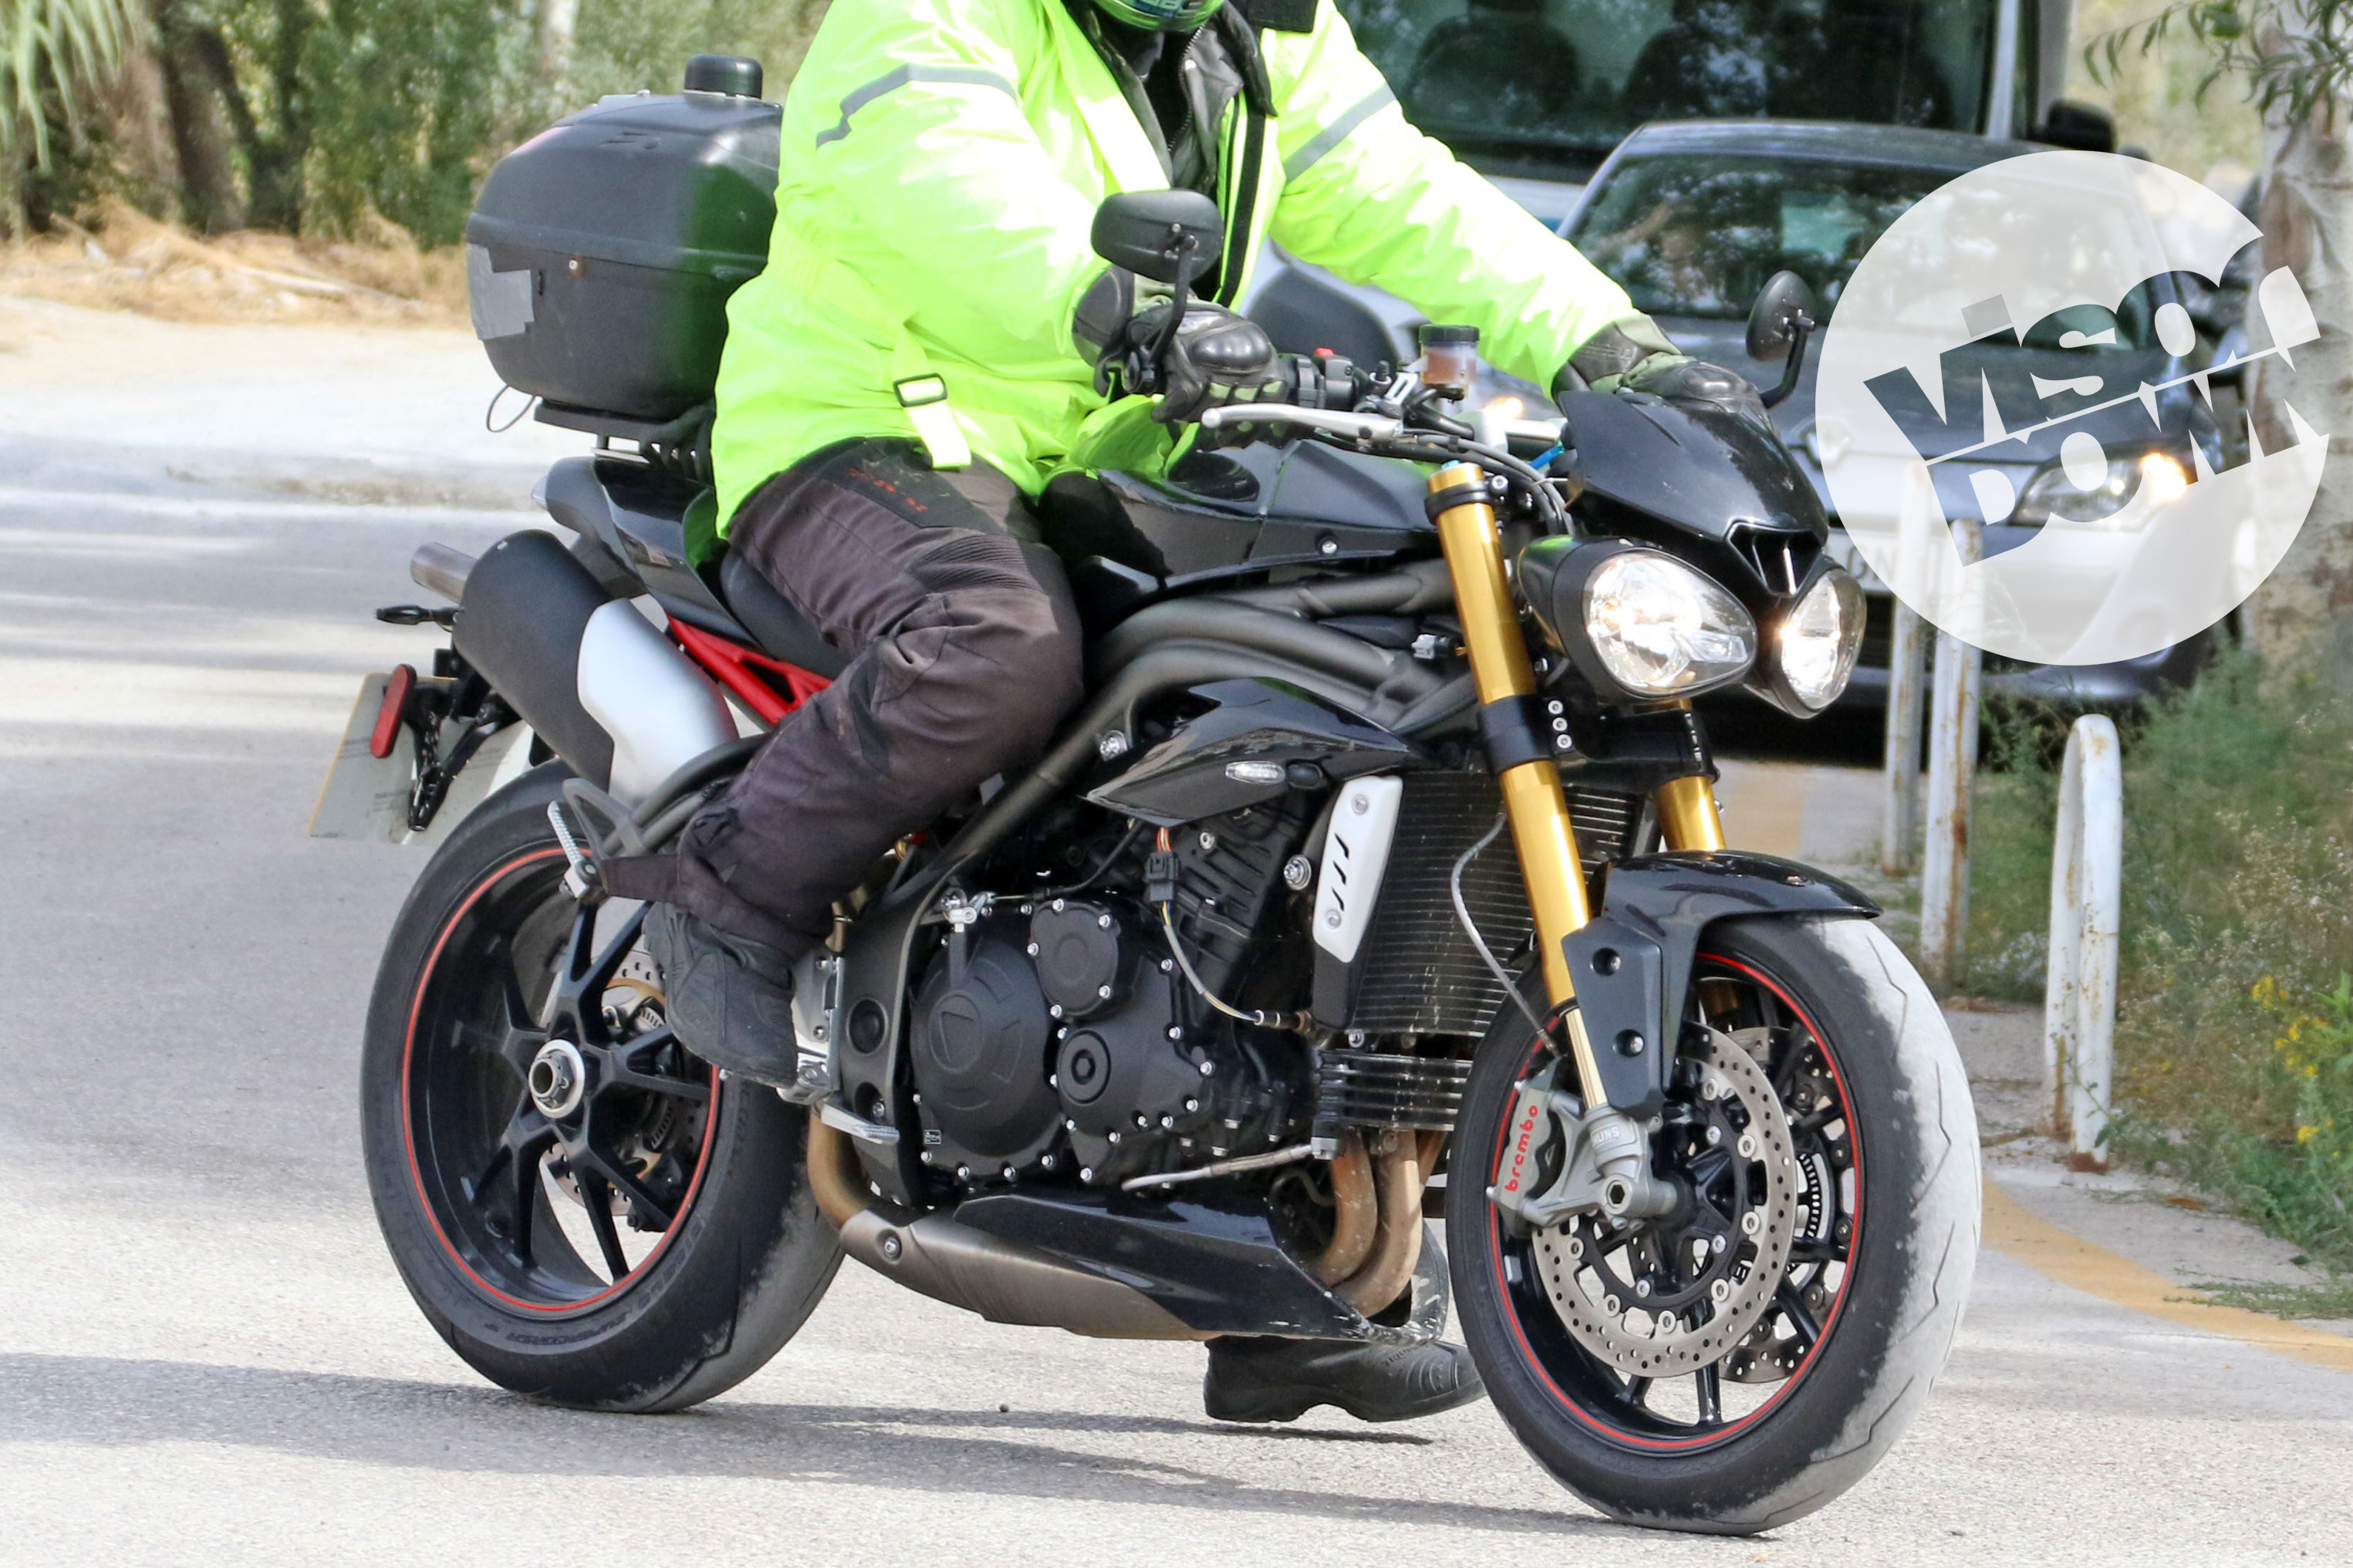 New Triumph Speed Triple R revealed